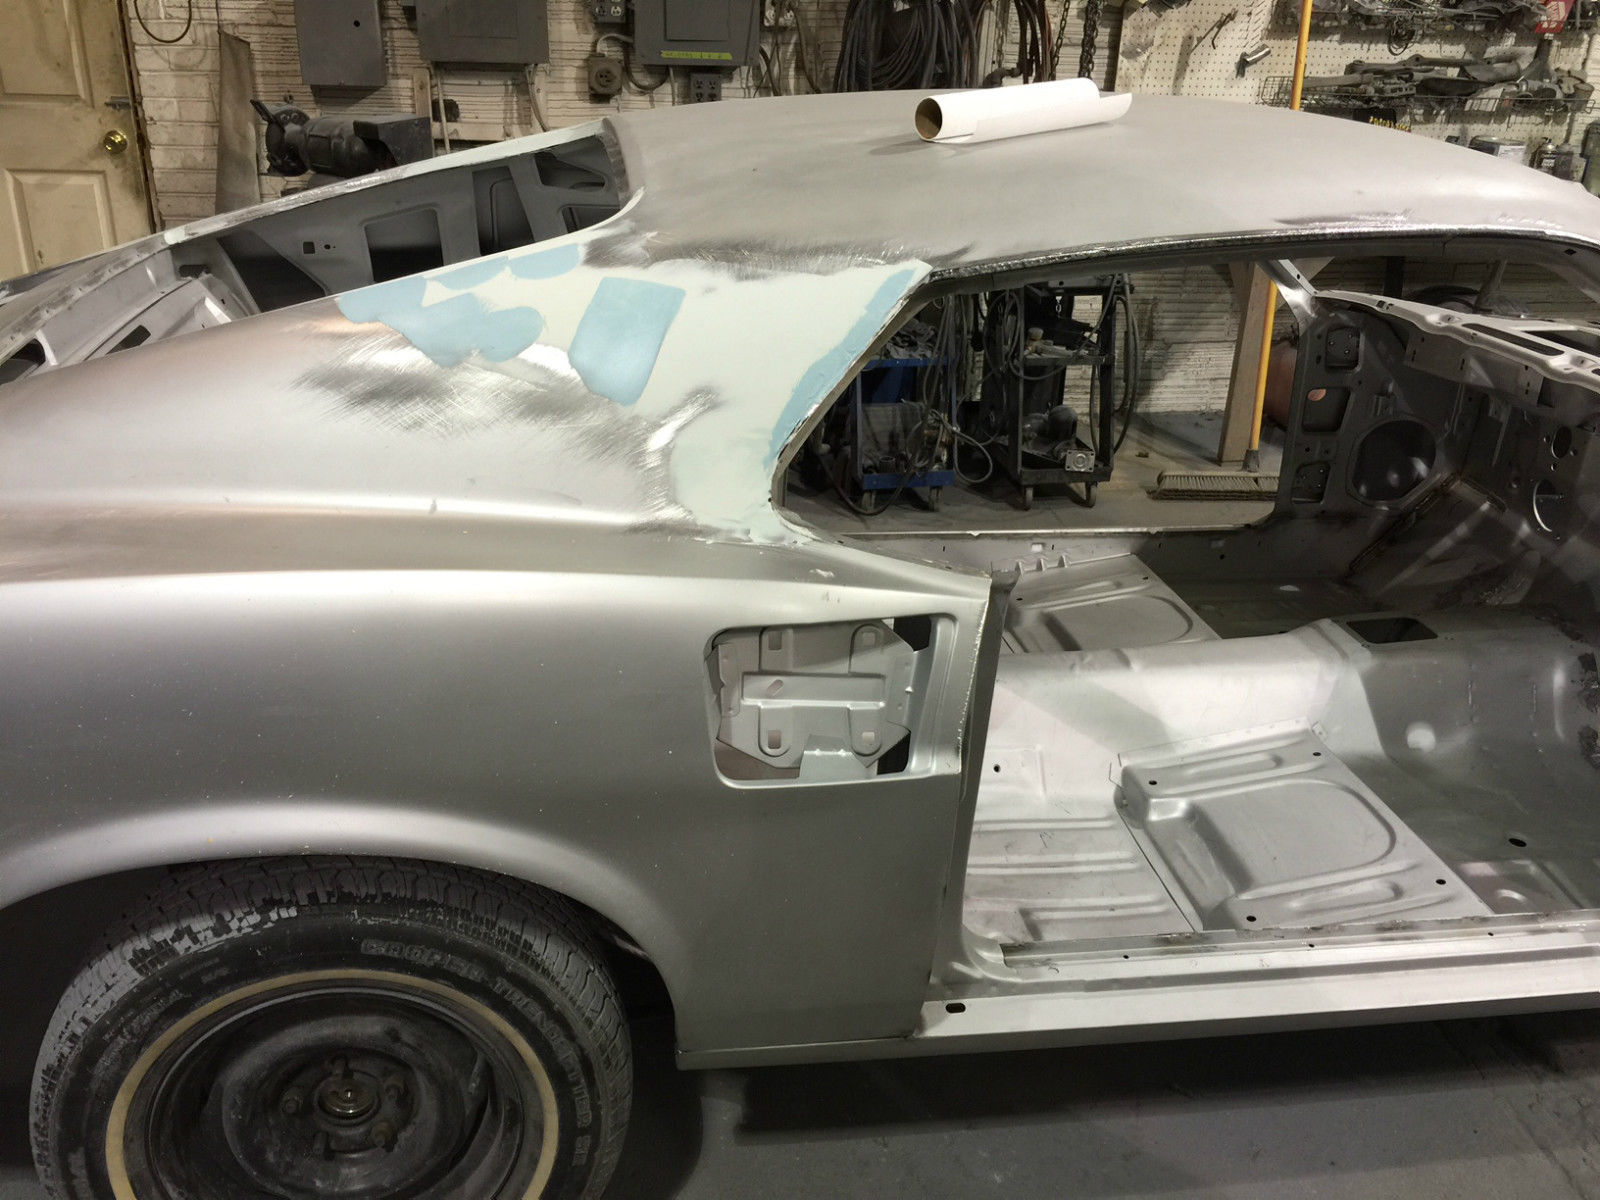 1969 1970 Ford Mustang Fastback Donor Project Body Boss Mach 1 Clone Gt Shelby